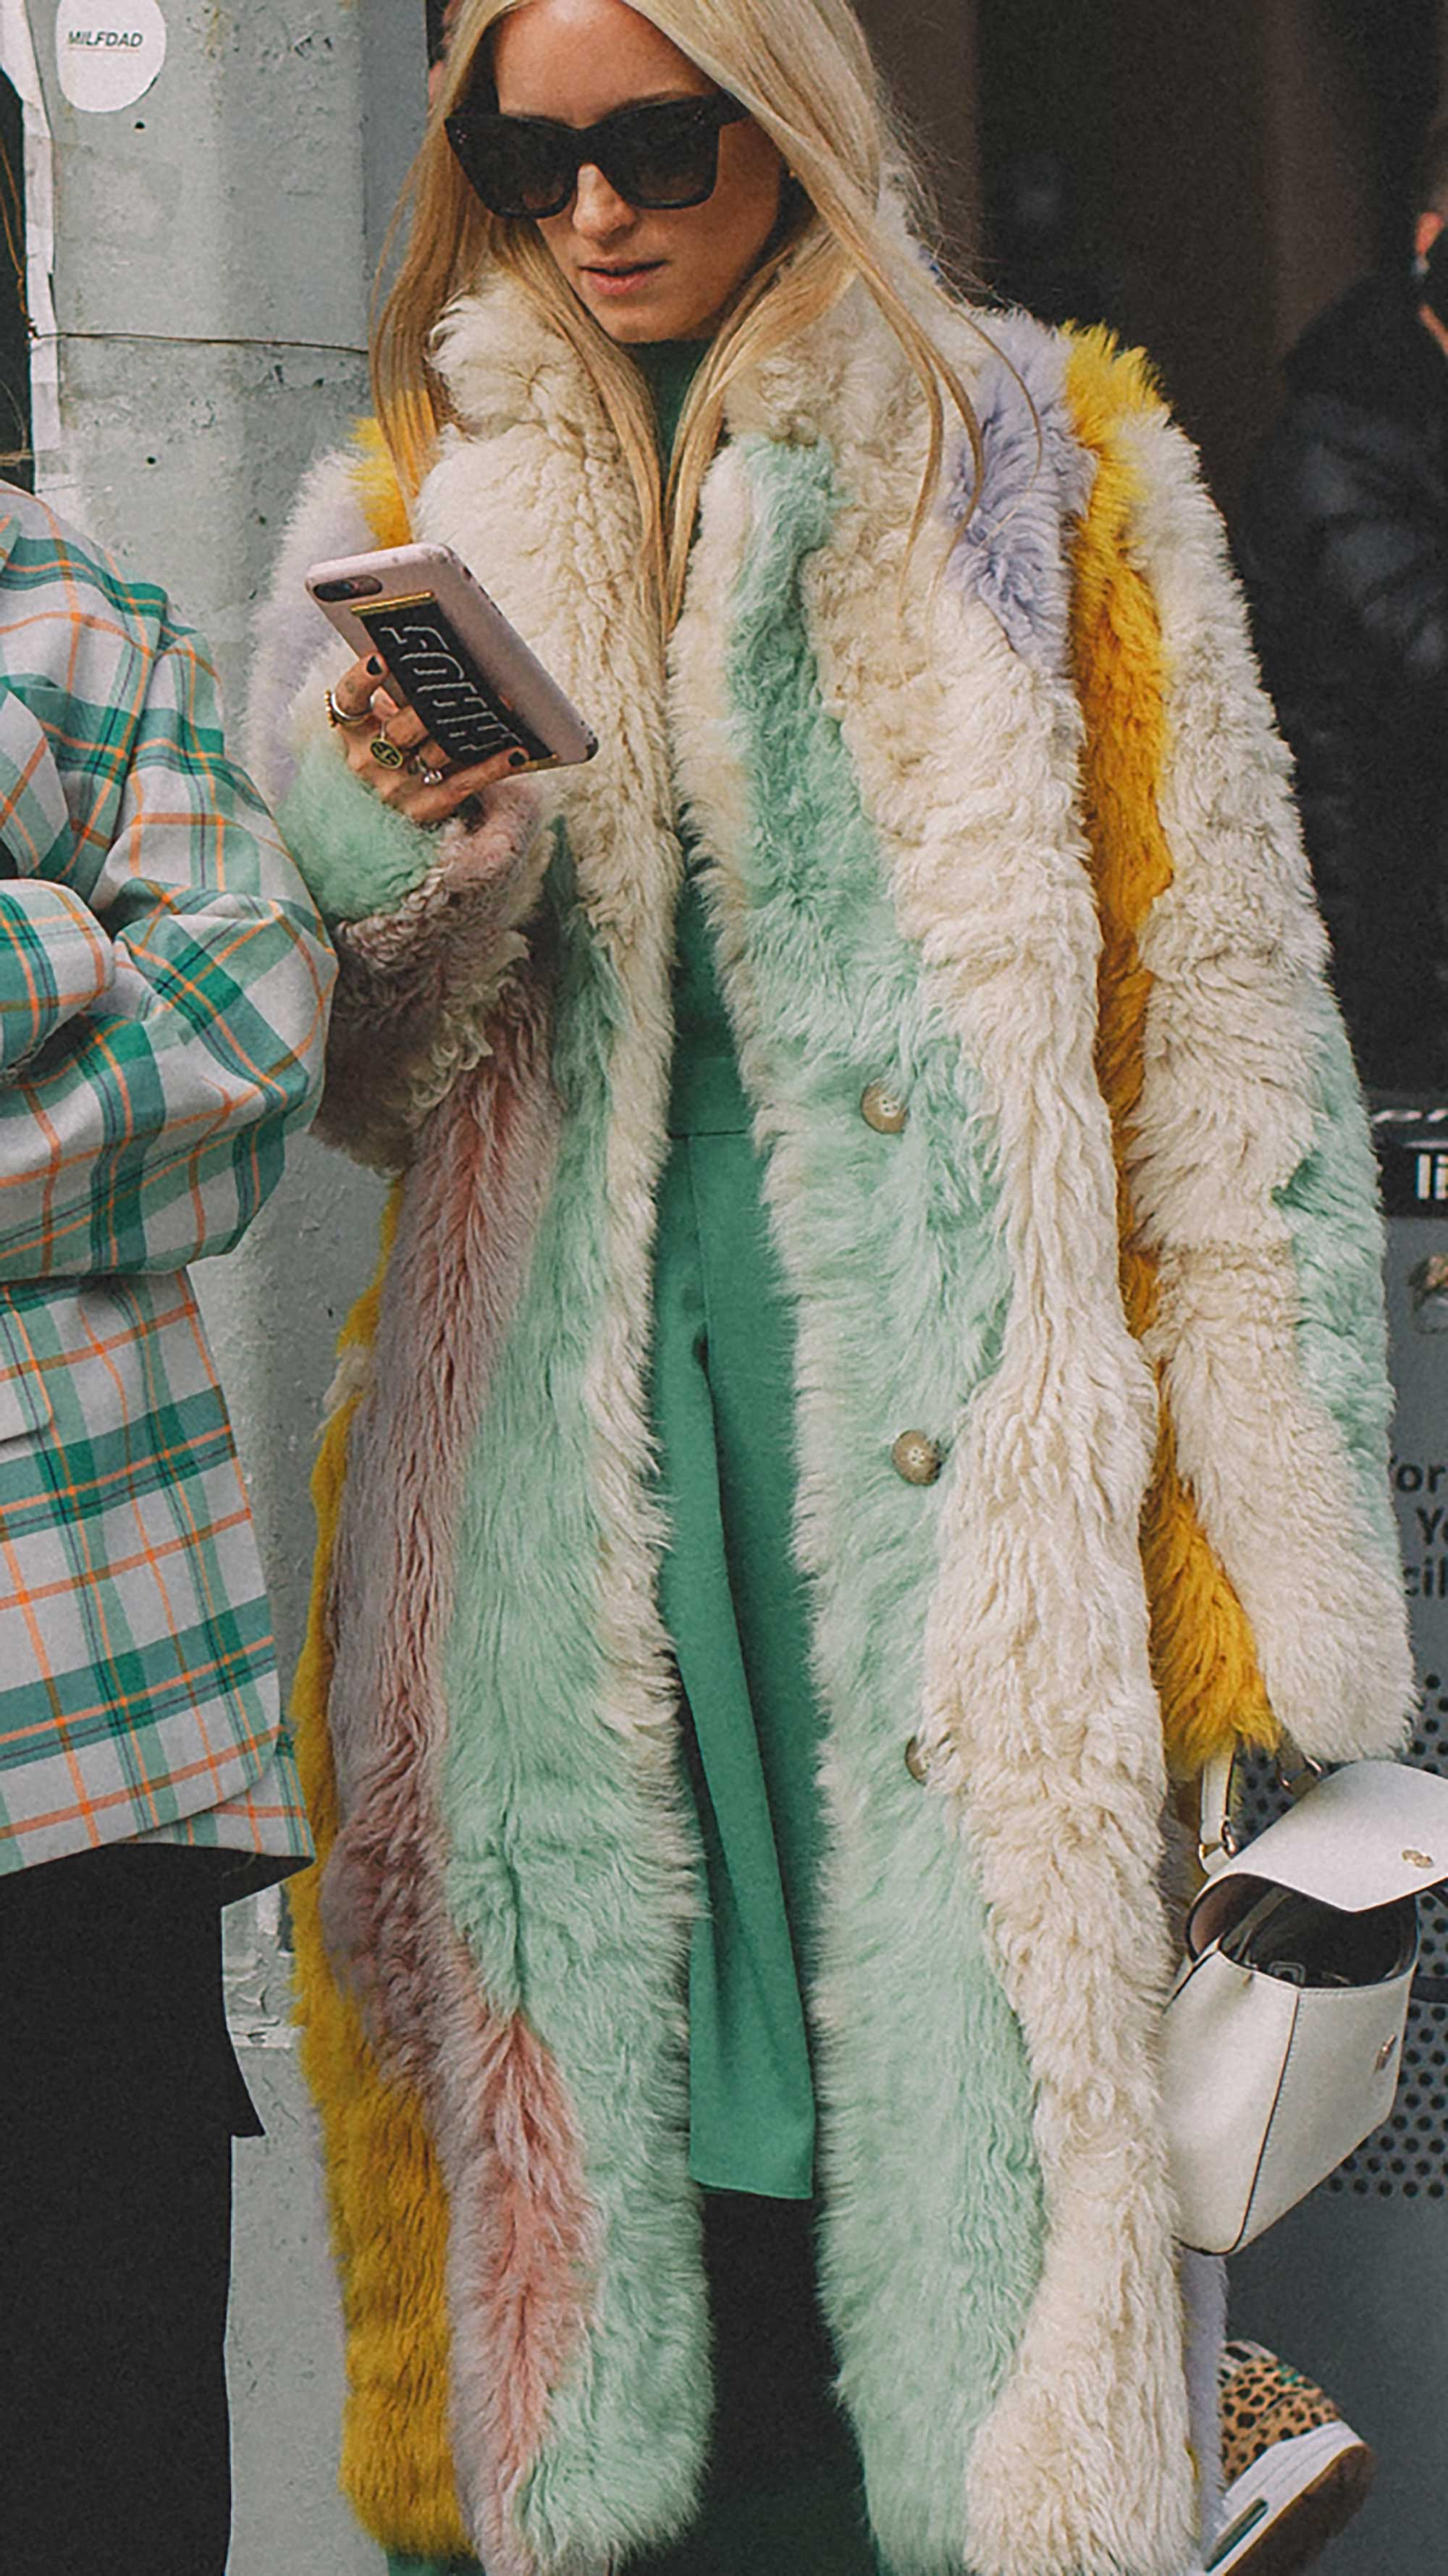 20 irresistible pastel outfit ideas for winter from New York Fashion Week street style13.jpg